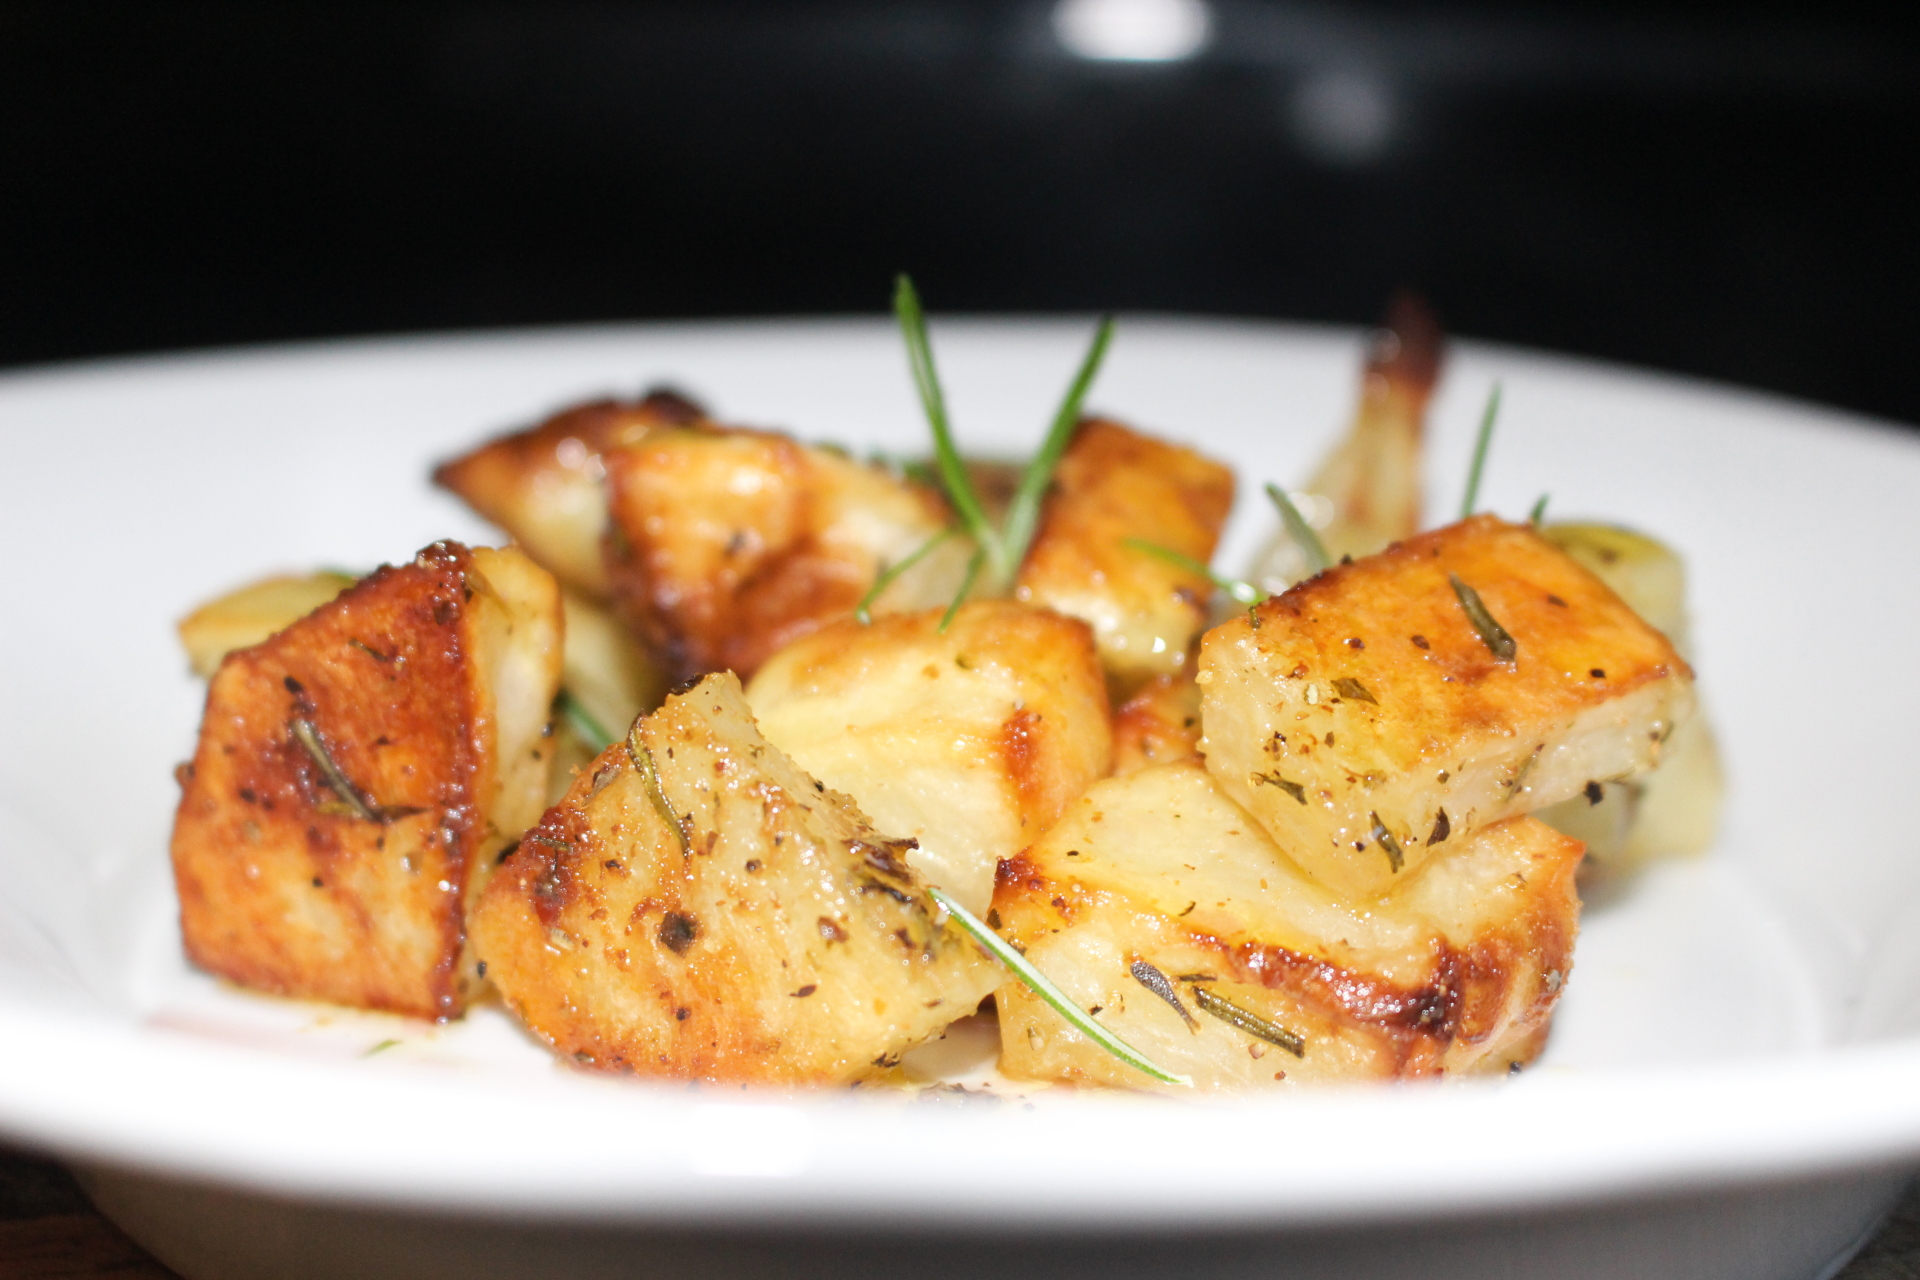 Meatless Monday Roasted Rosemary Potatoes